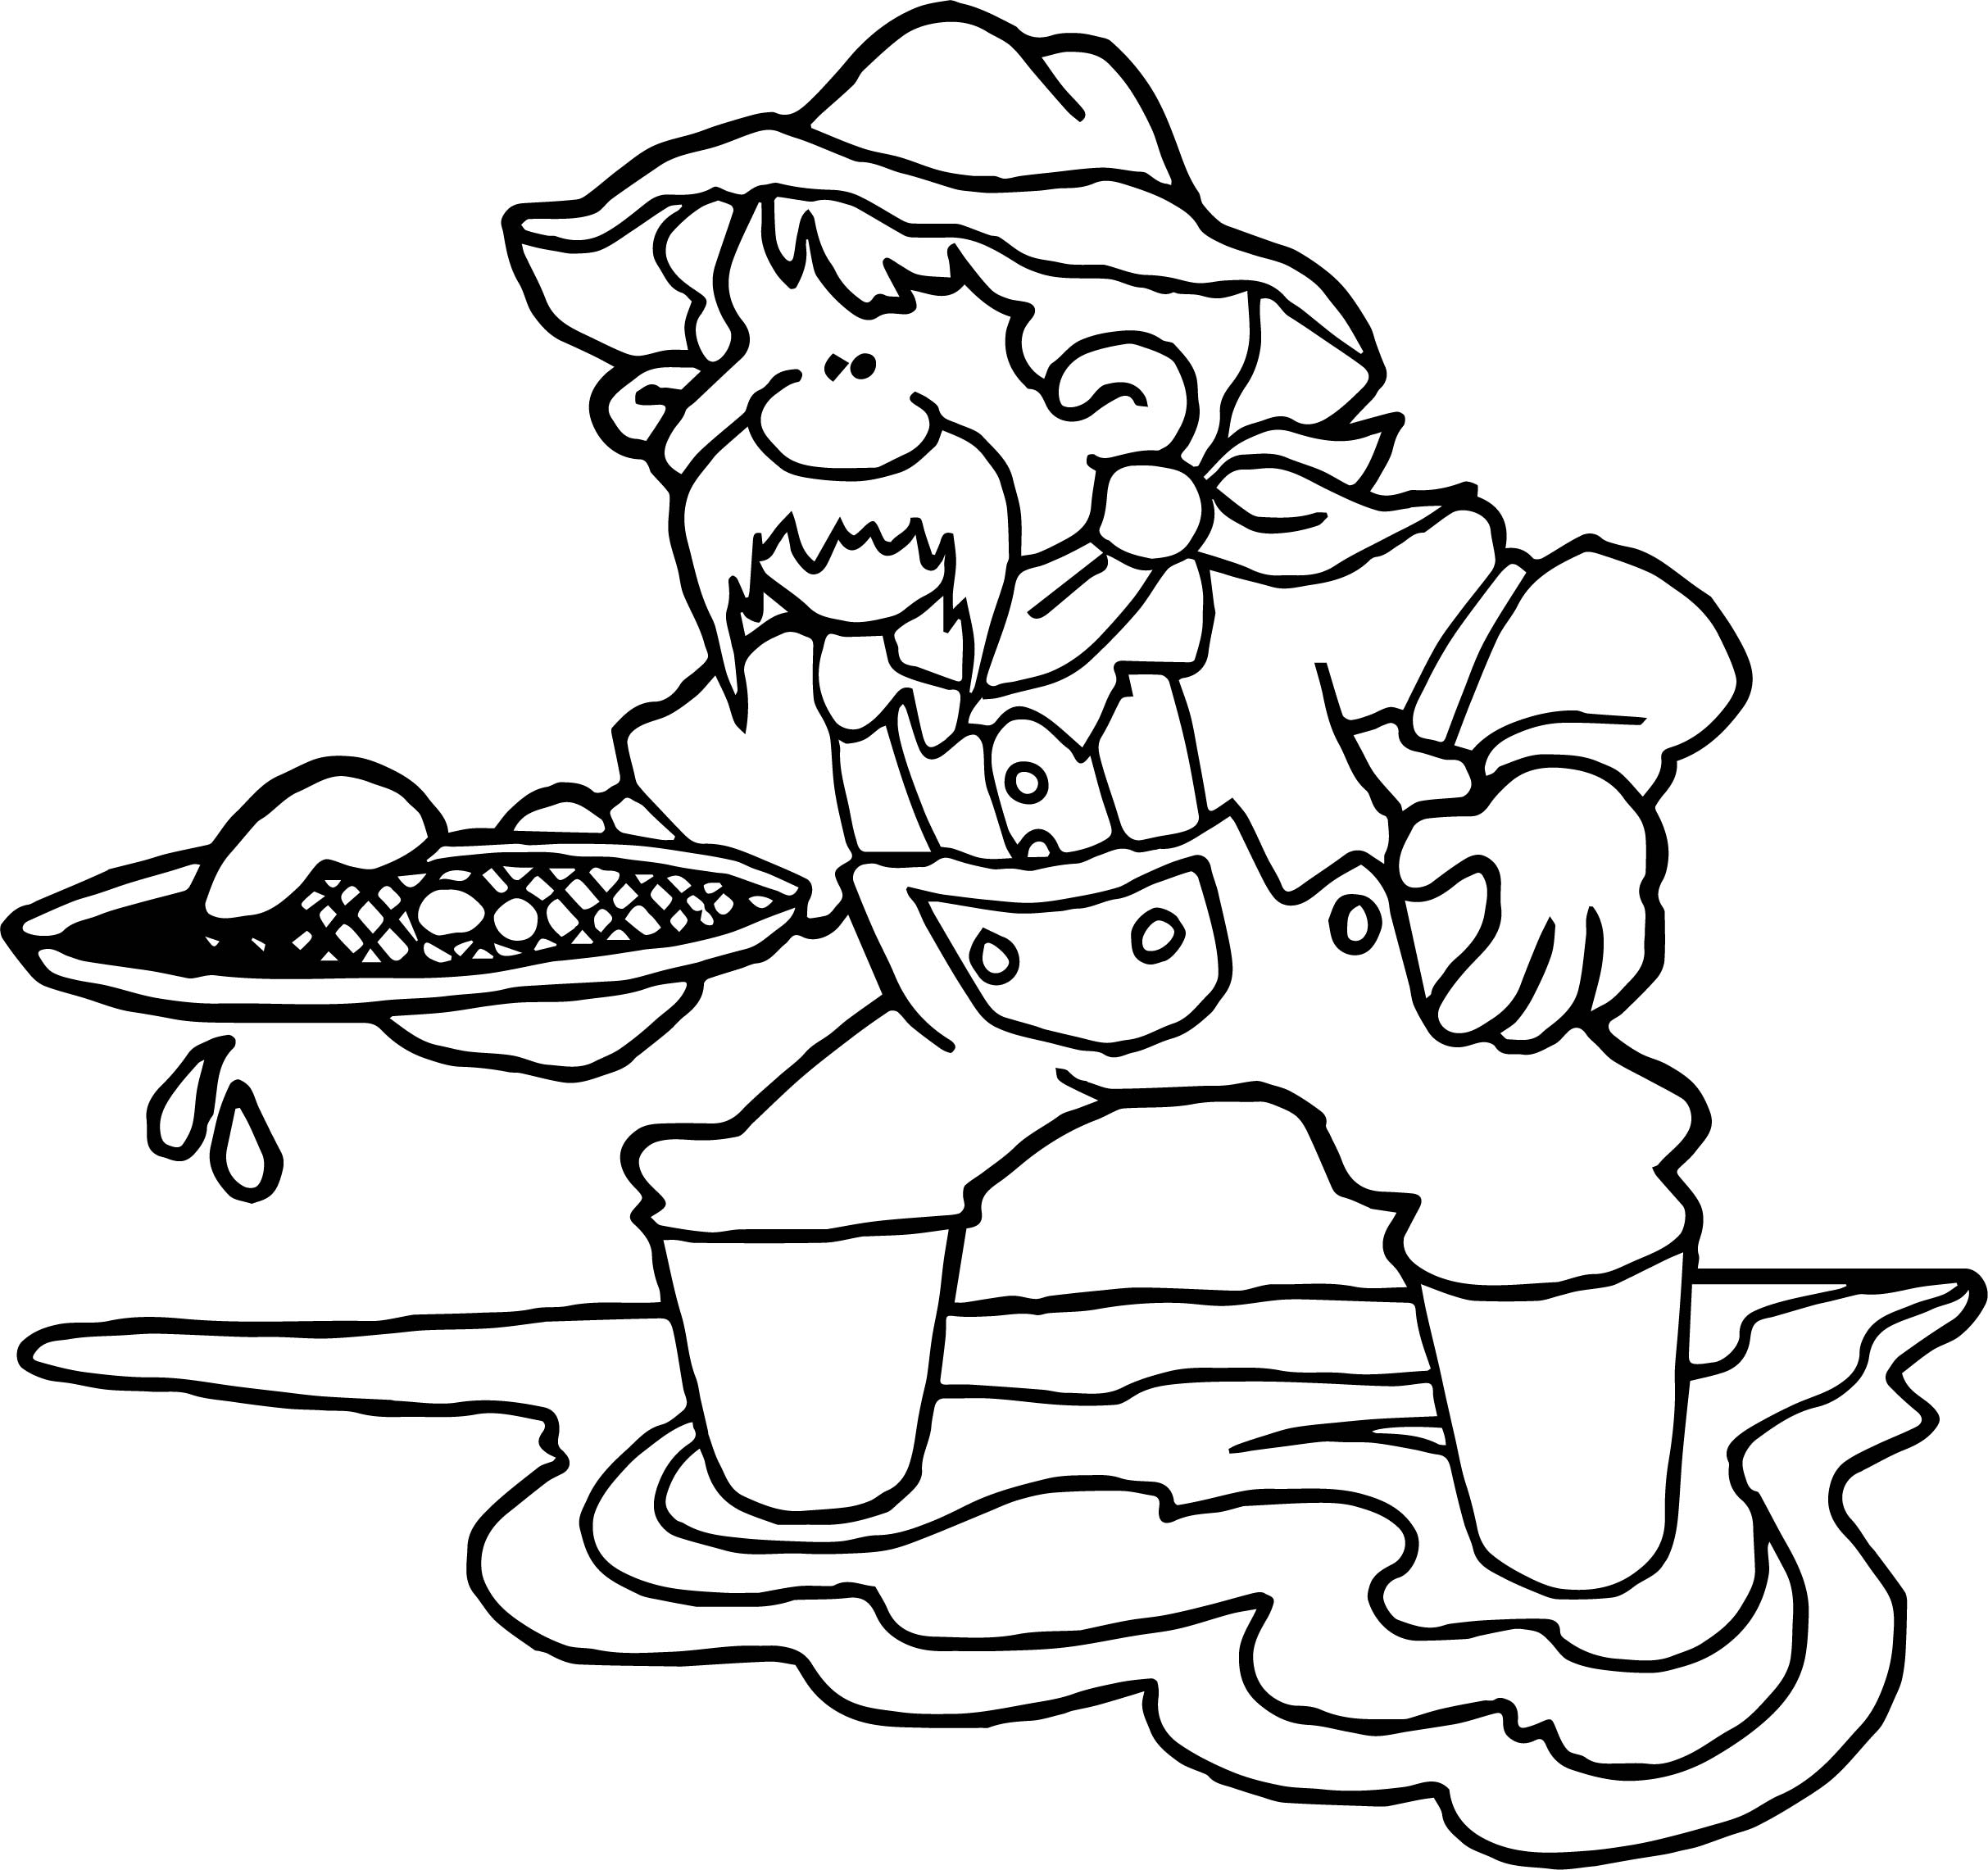 California Gold Rush Coloring Pages At Getdrawings